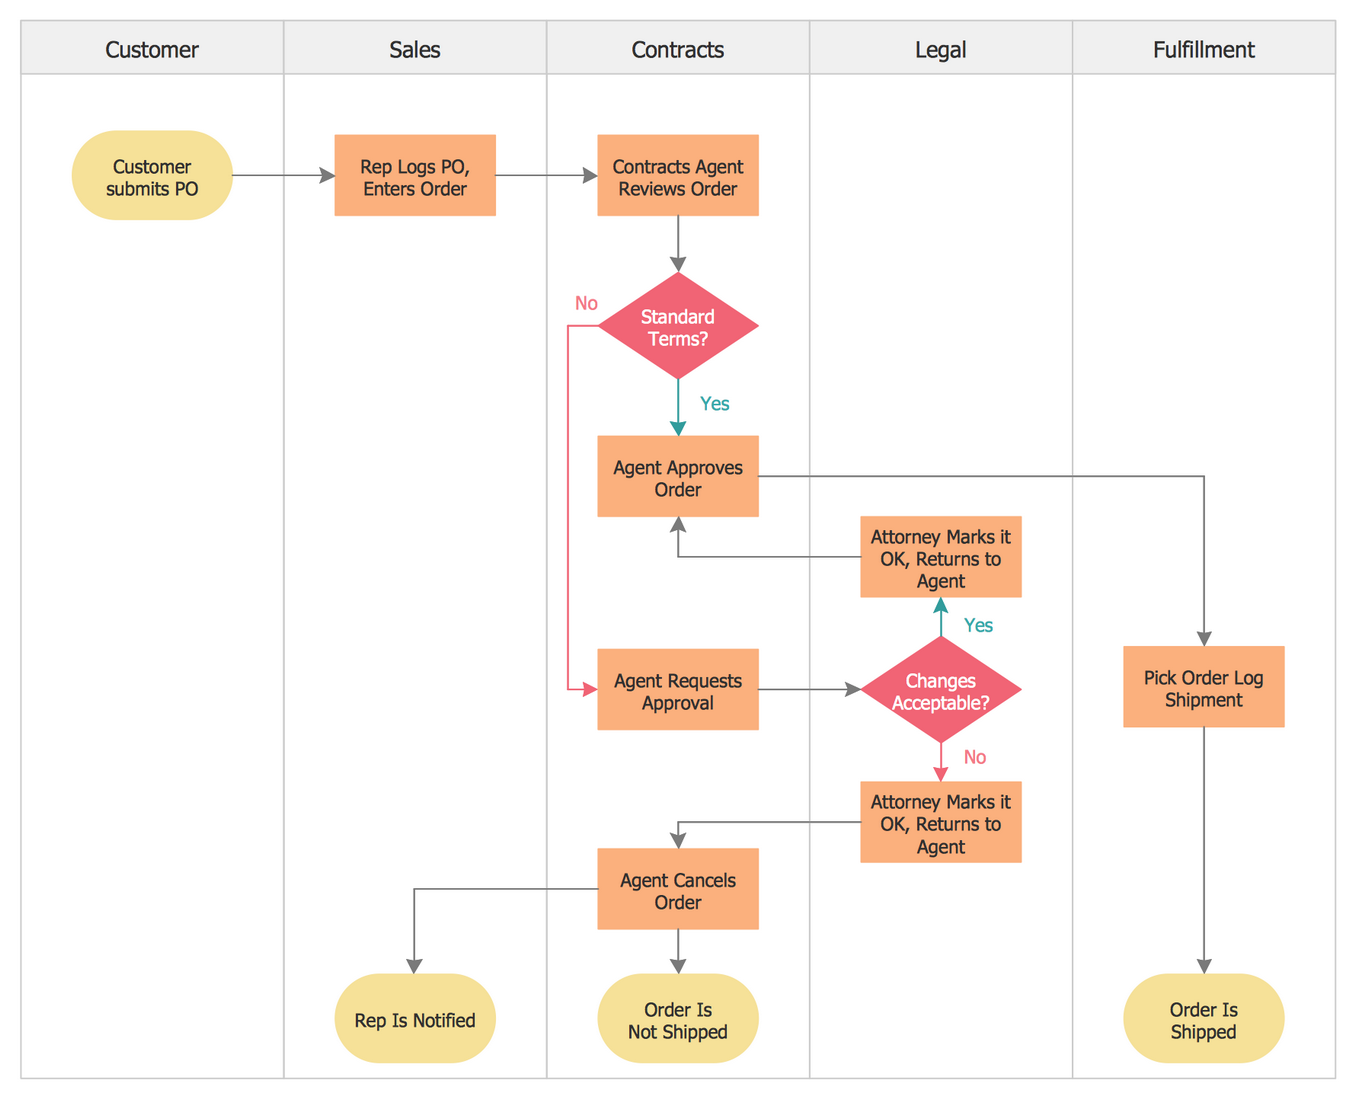 Cross-Functional Flowchart - Approvals